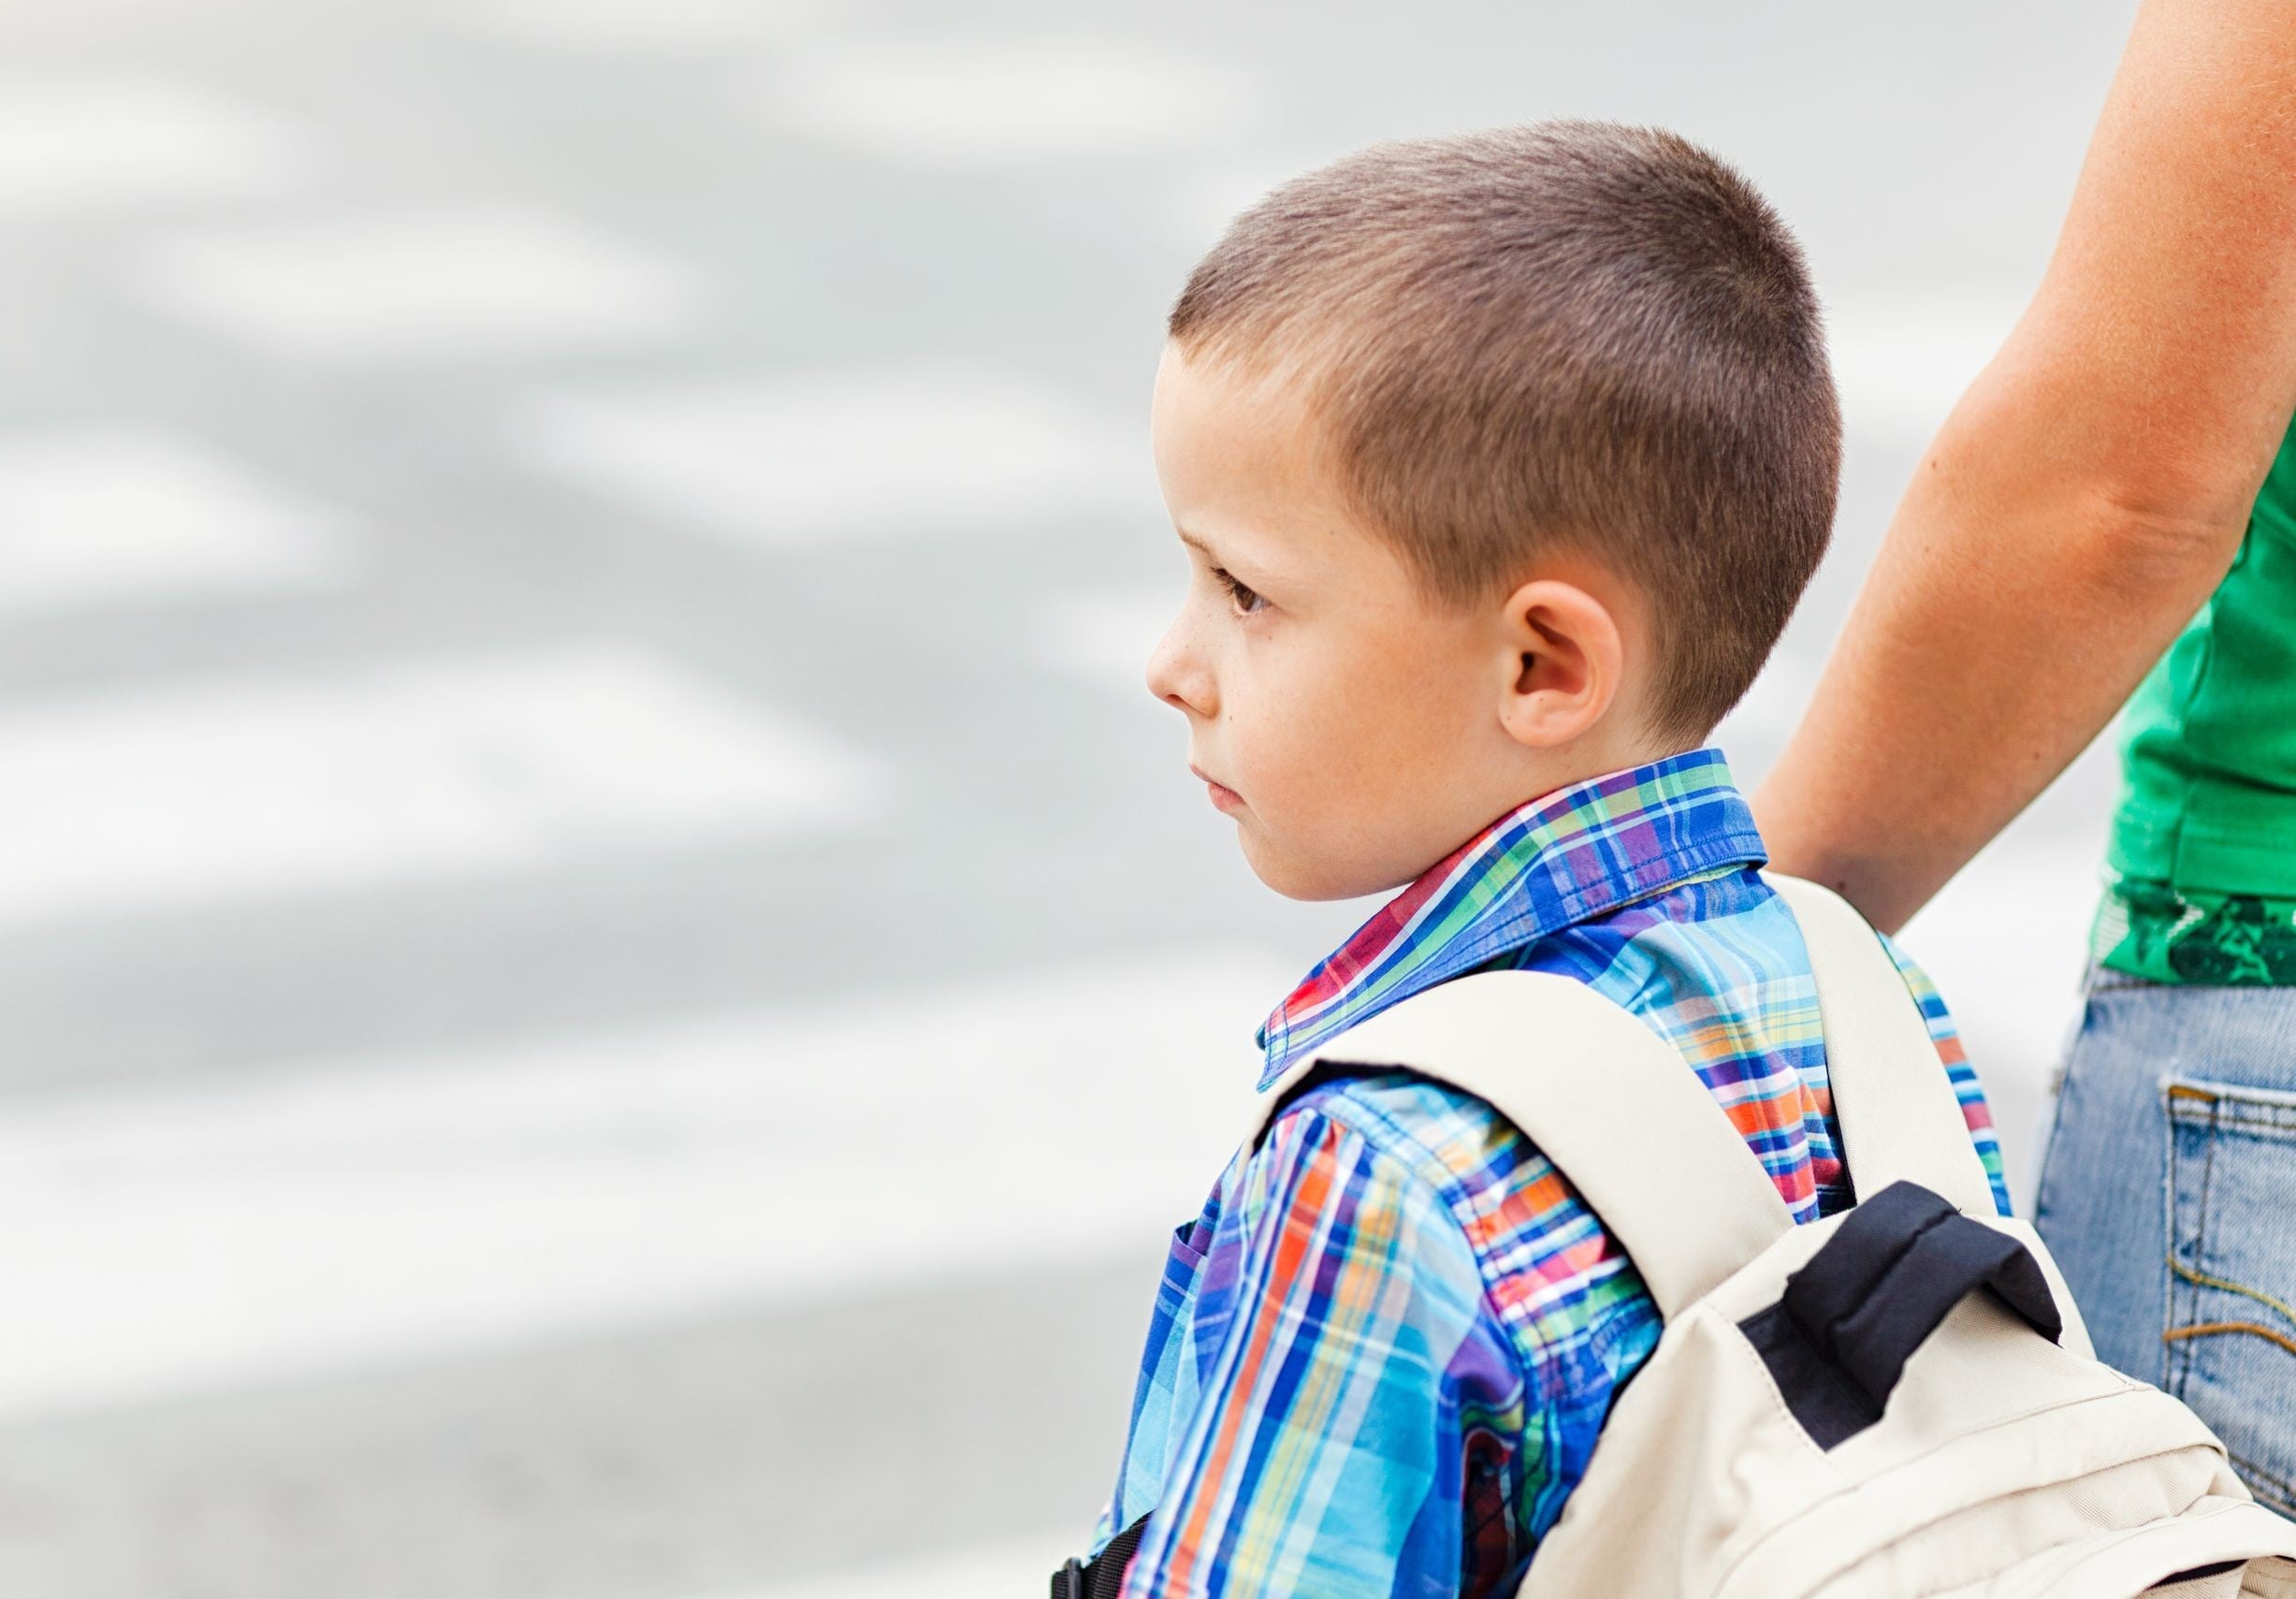 5 (Mostly) New Safety Rules Parents Should Instill In Their Child